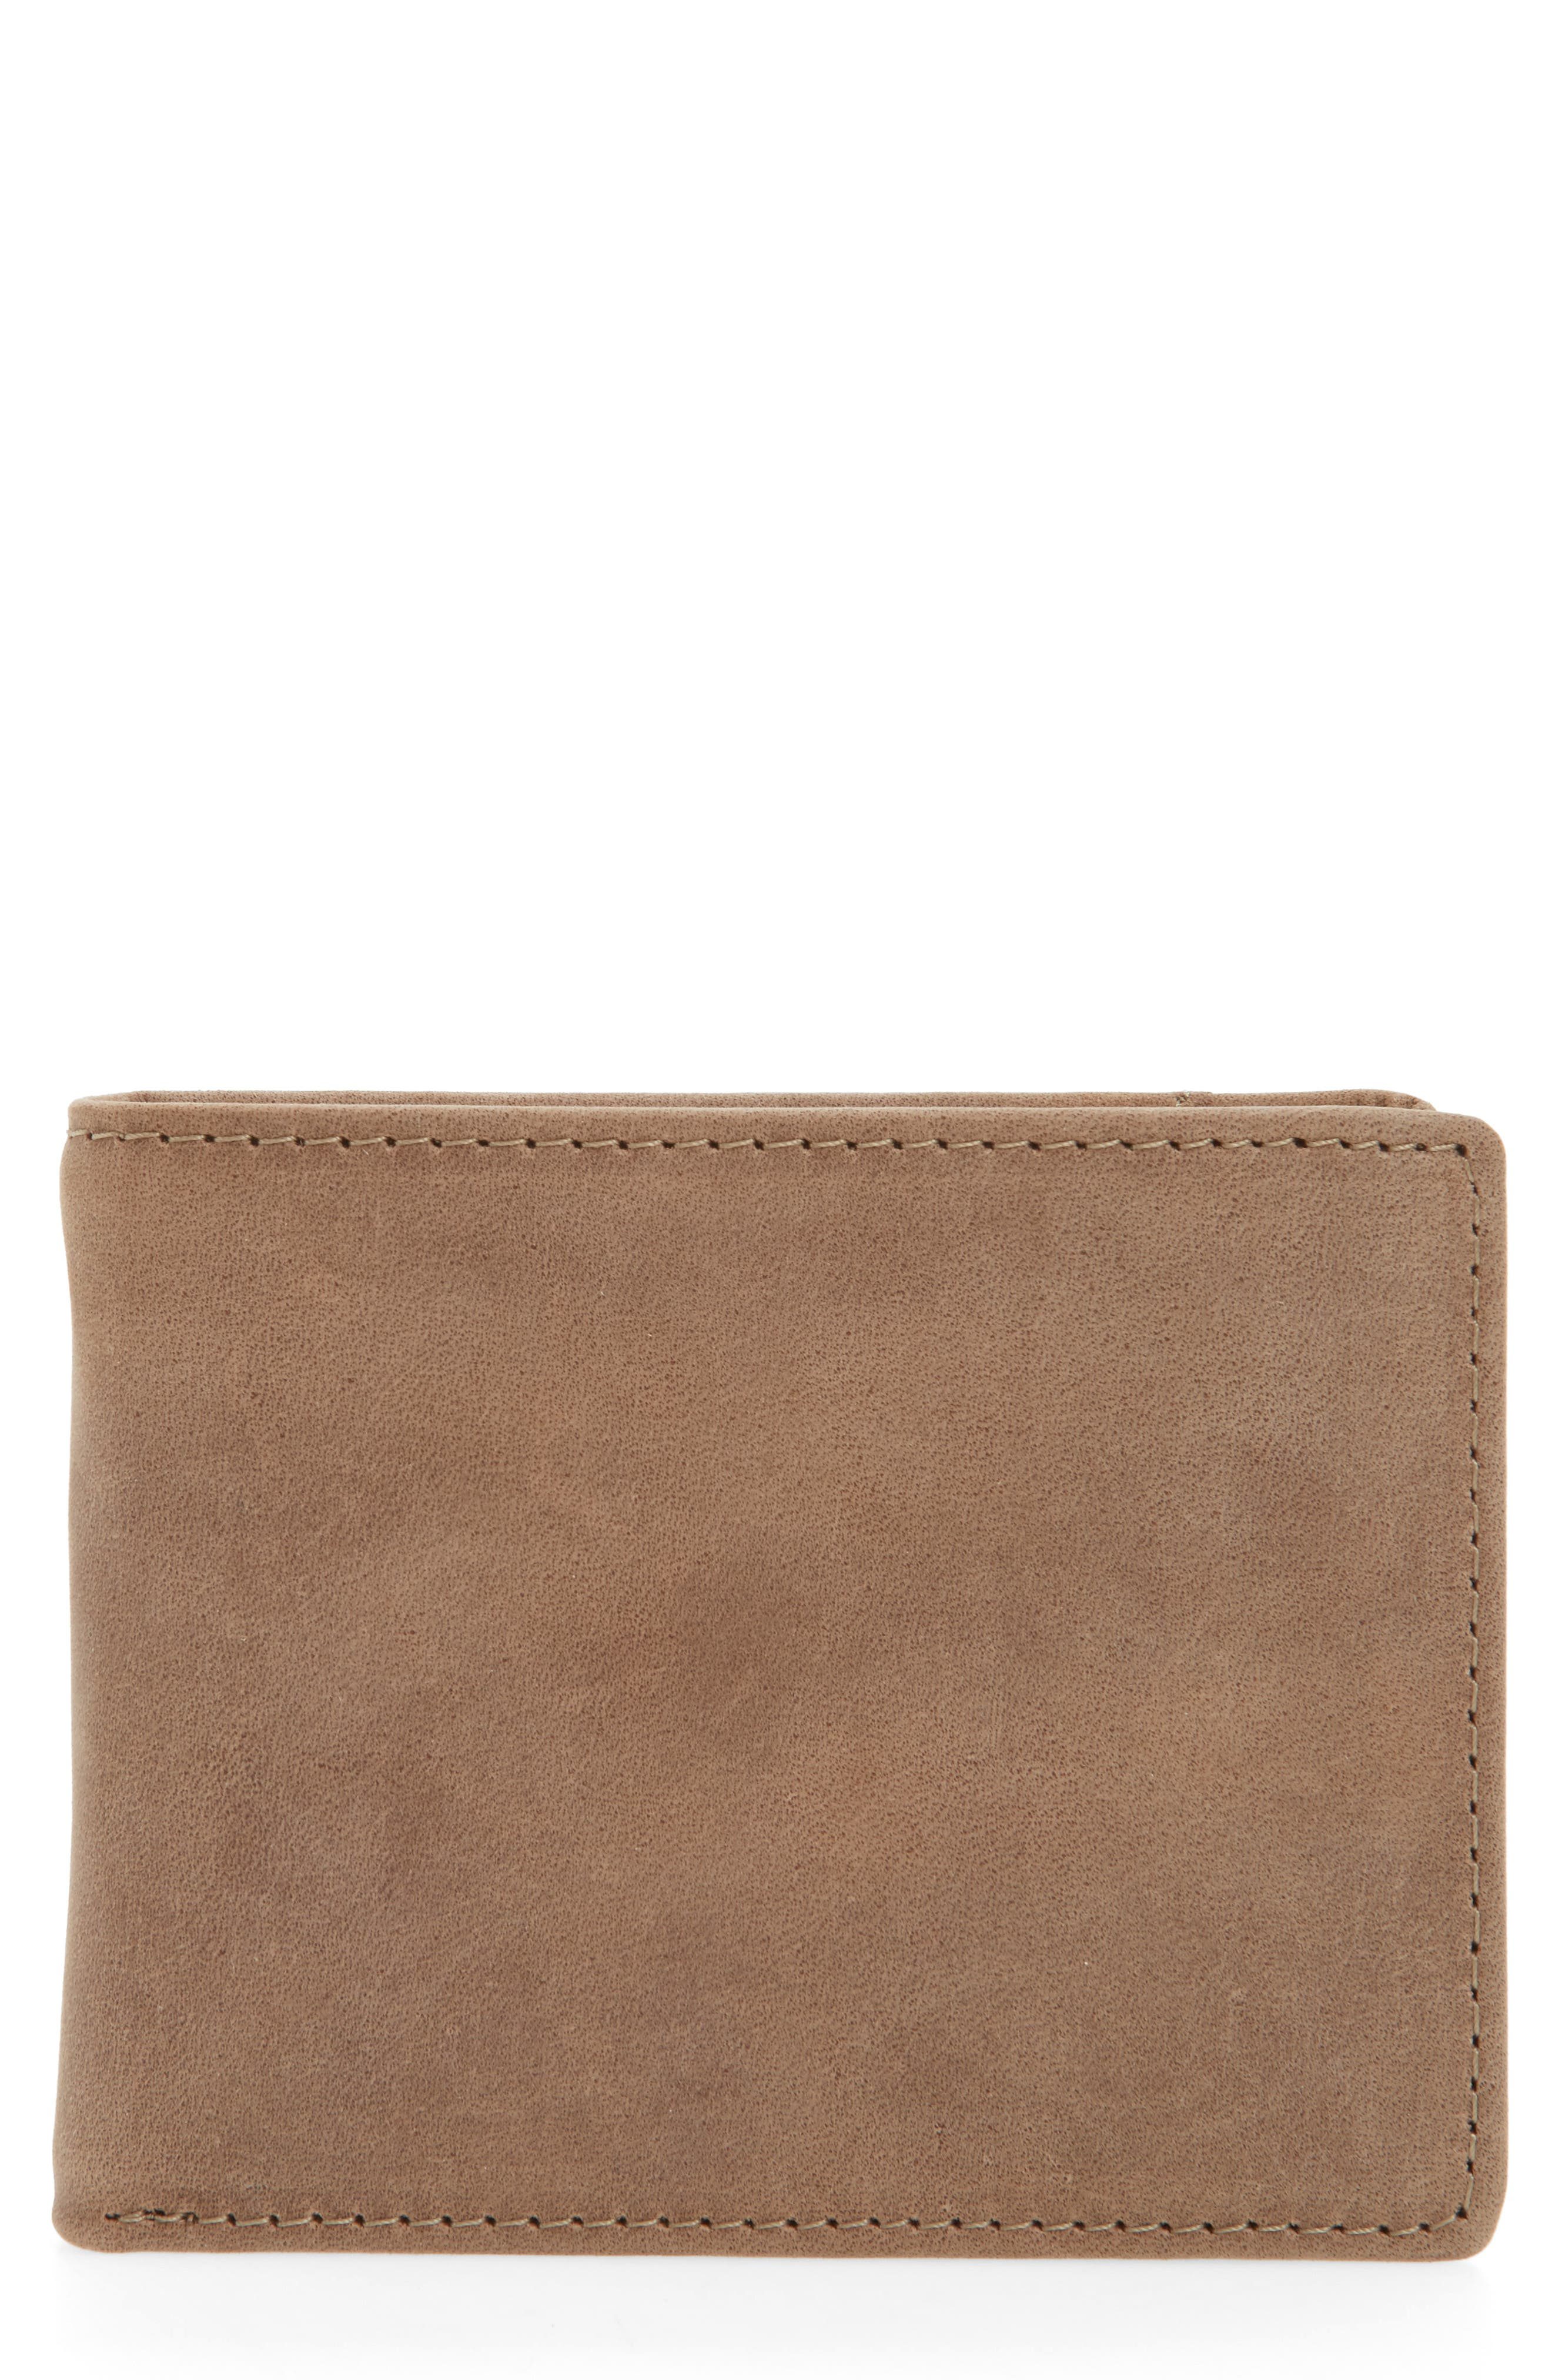 Main Image - Nordstrom Men's Shop Upton Leather Wallet